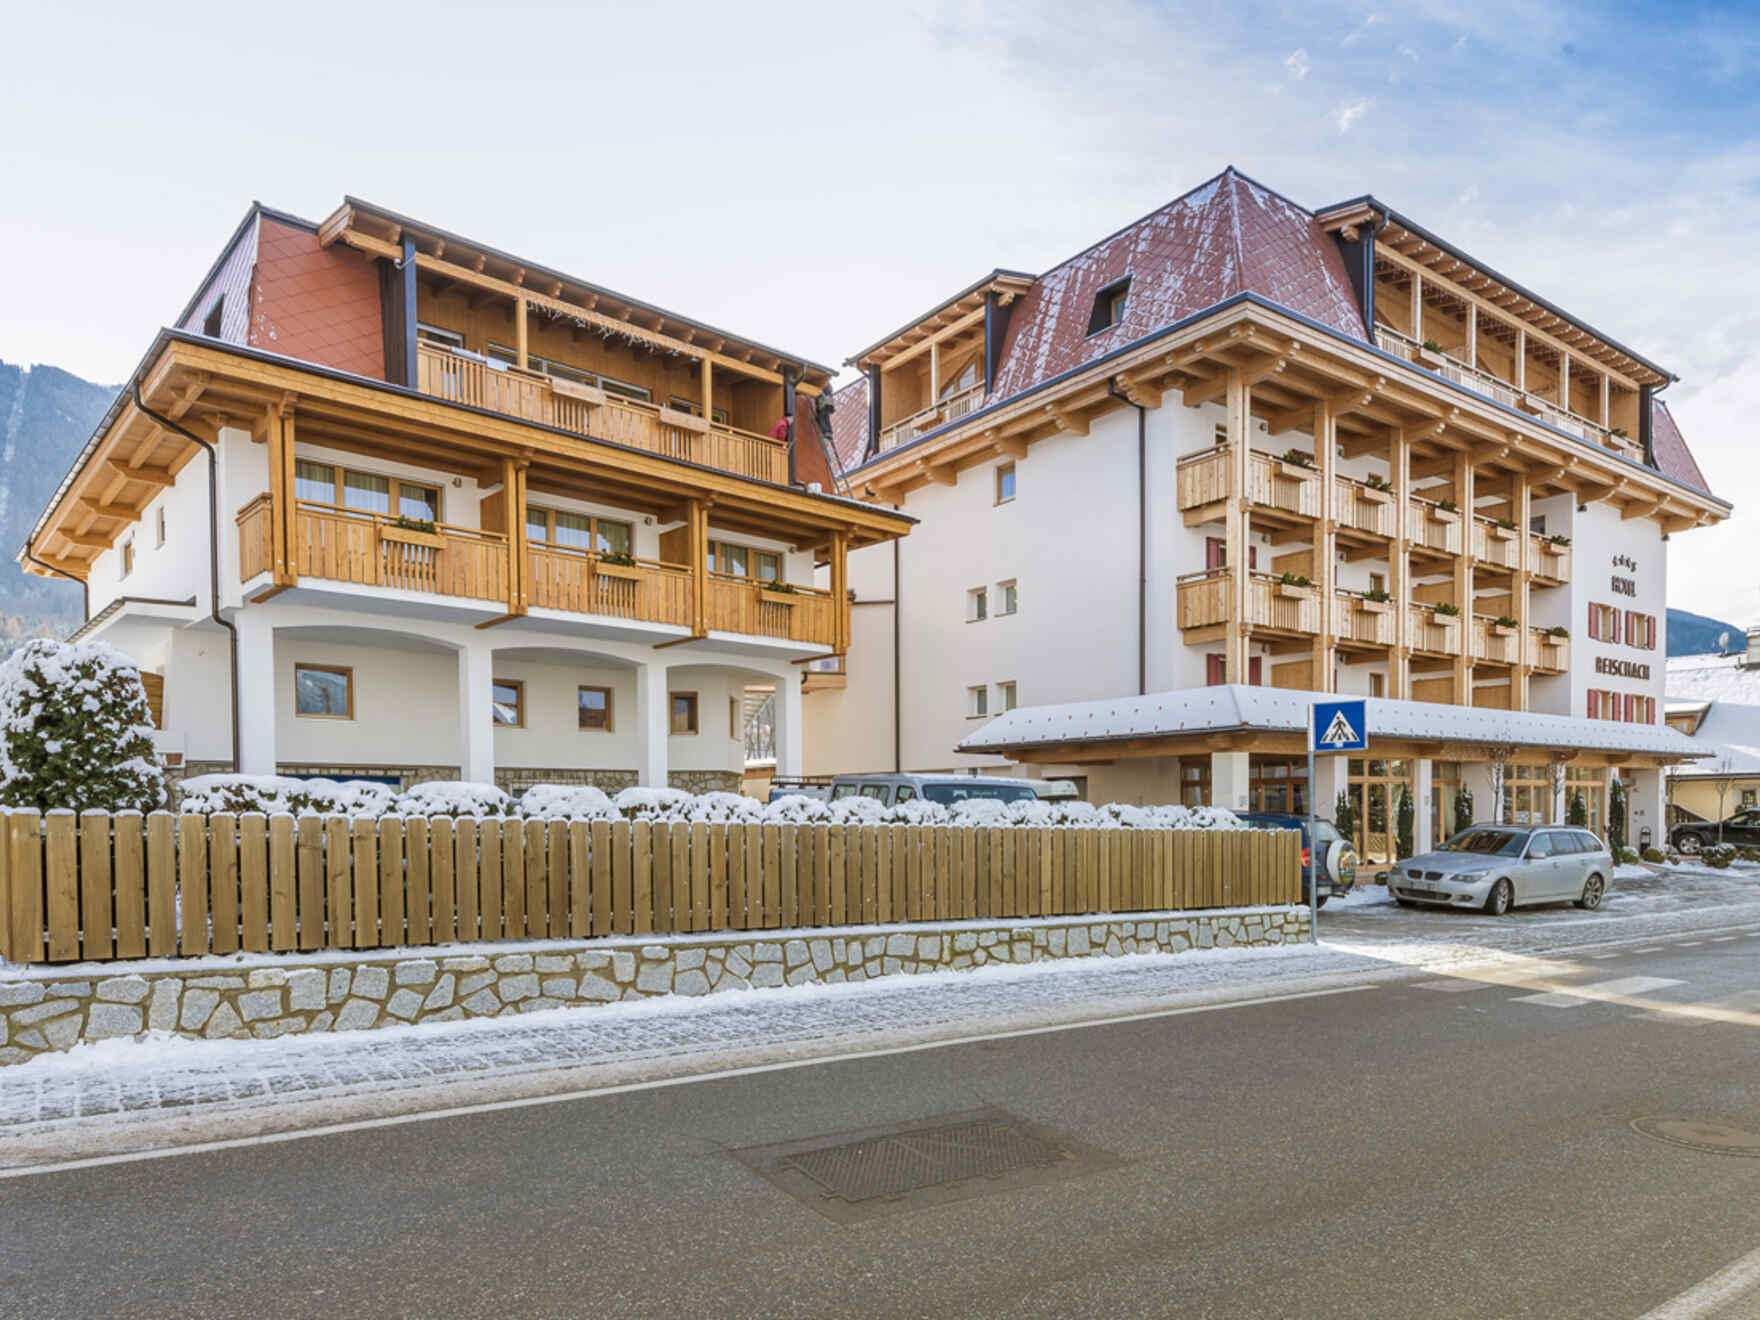 Prefabricated house Hotel Reischach KG